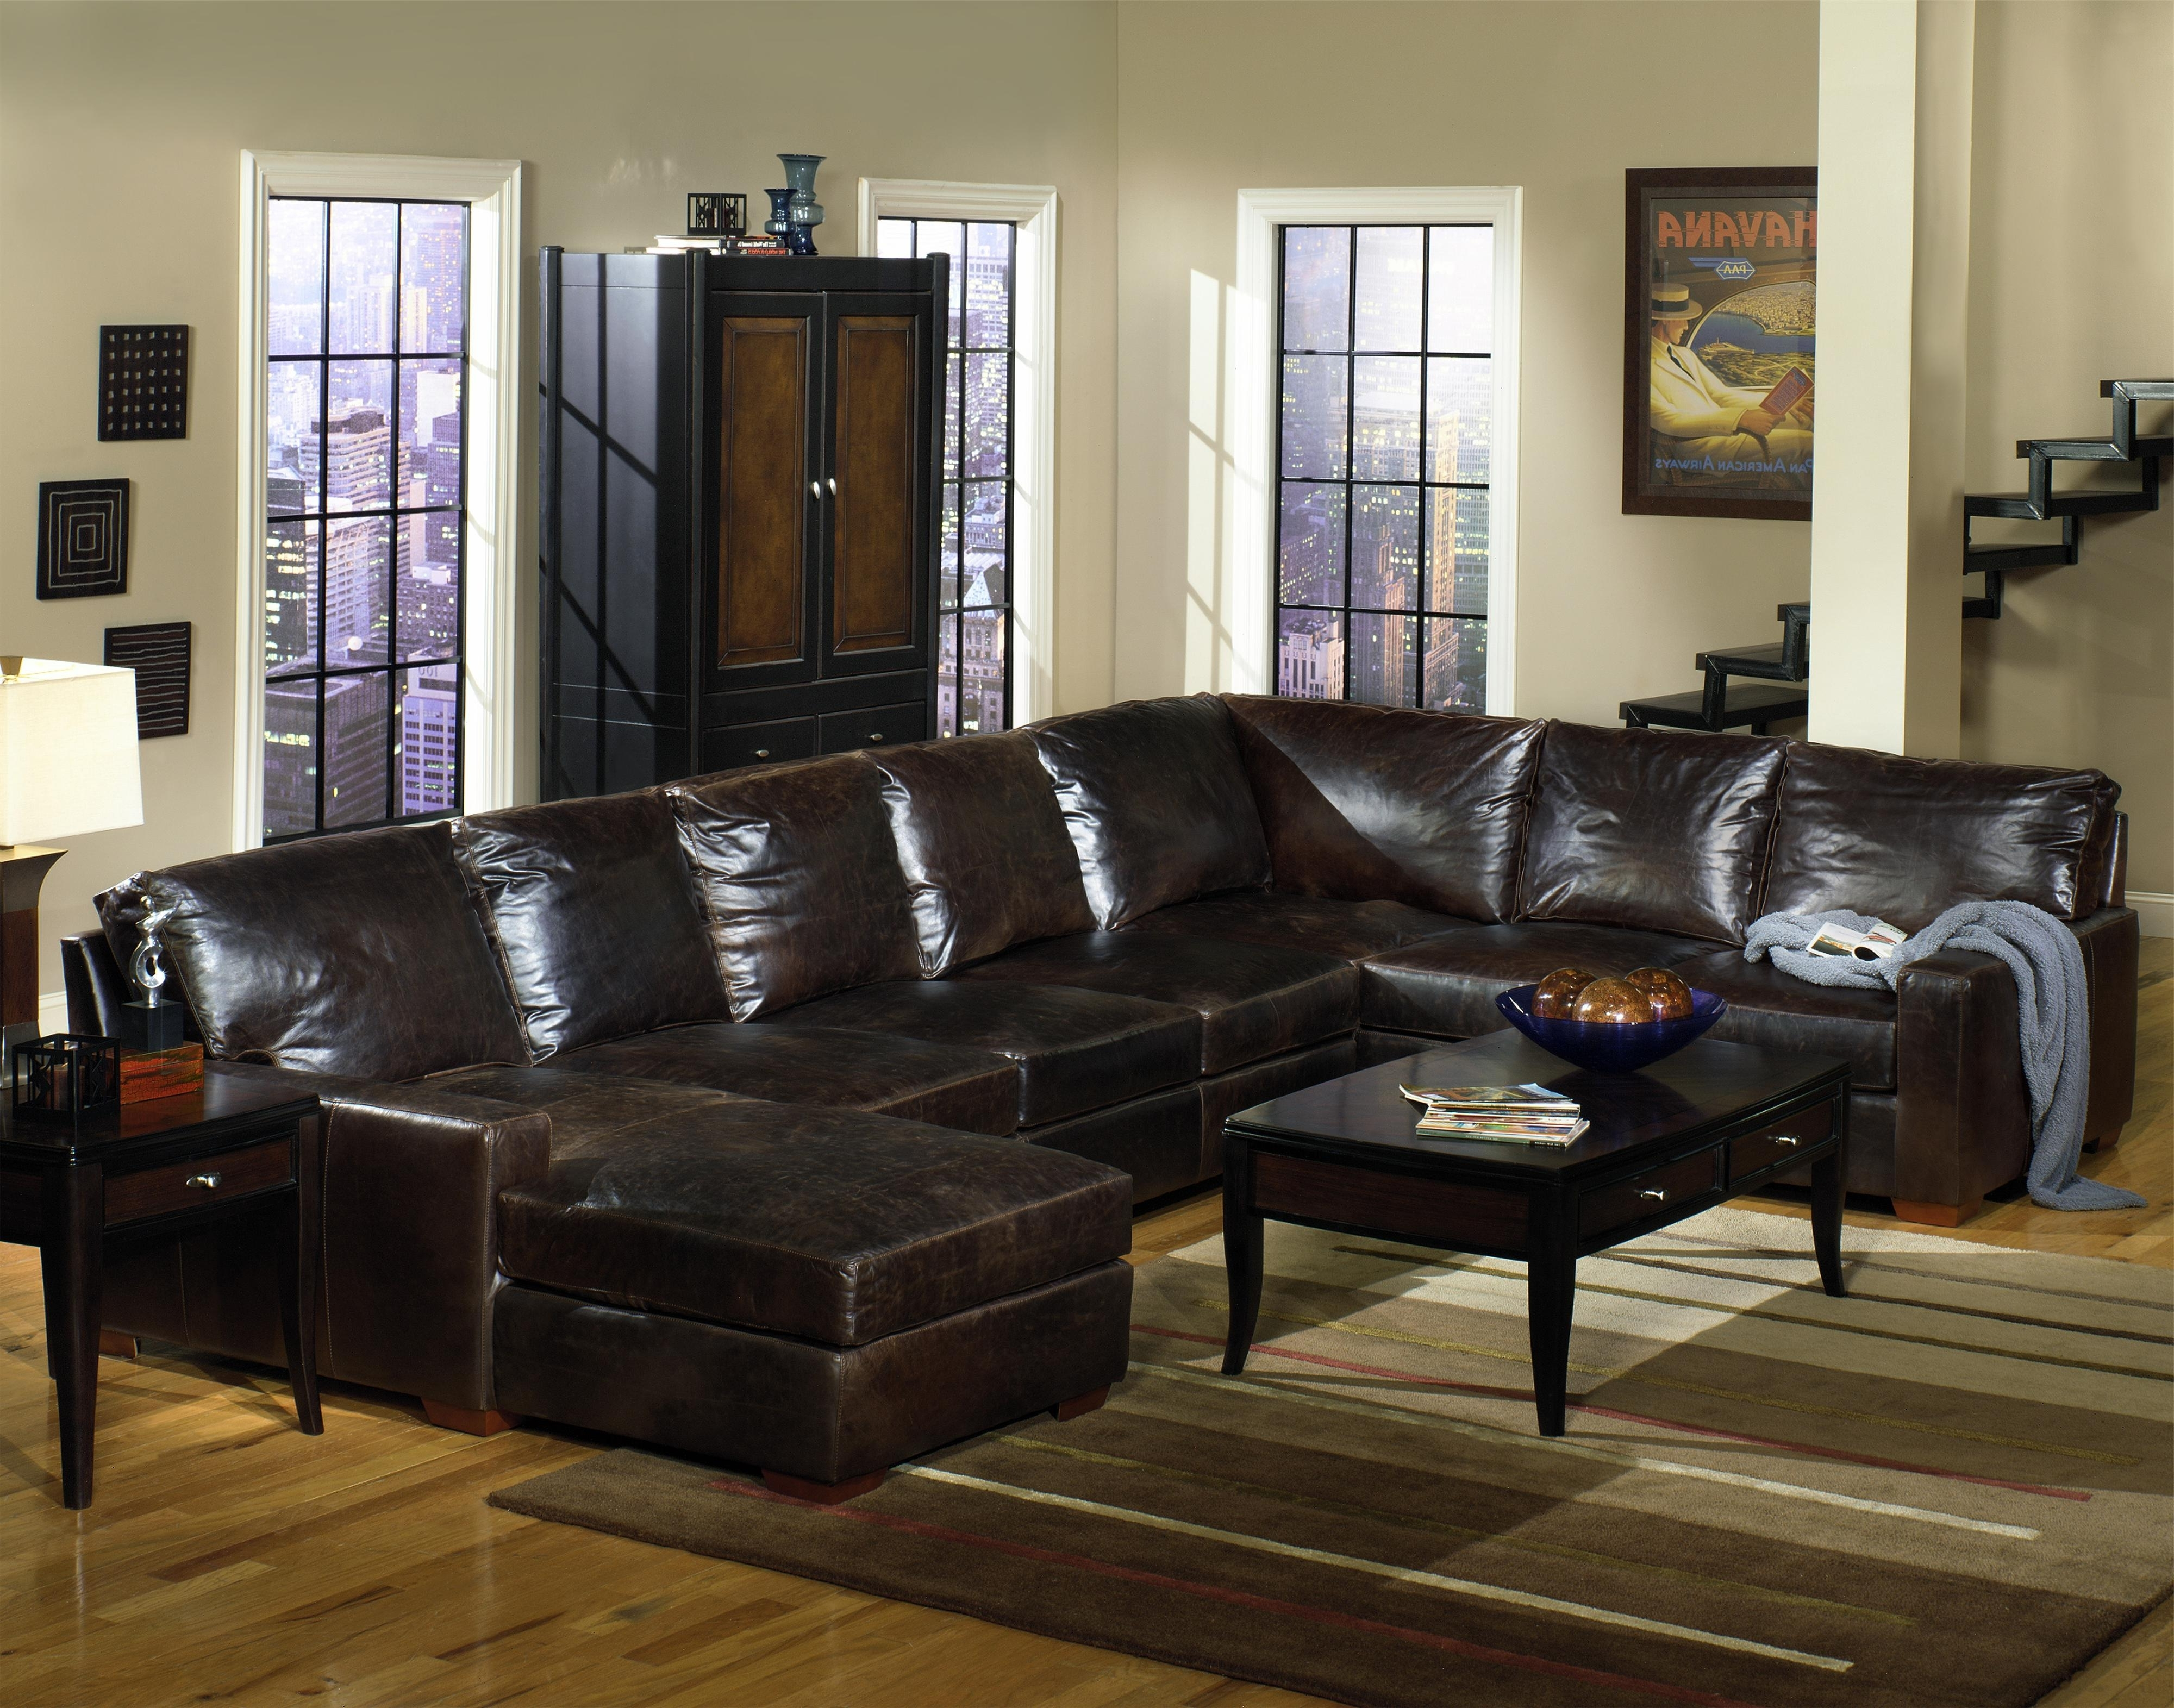 Trendy Sofa ~ Luxury Leather Sectional With Chaise White Leather Inside Leather Sectionals With Chaise (View 14 of 15)